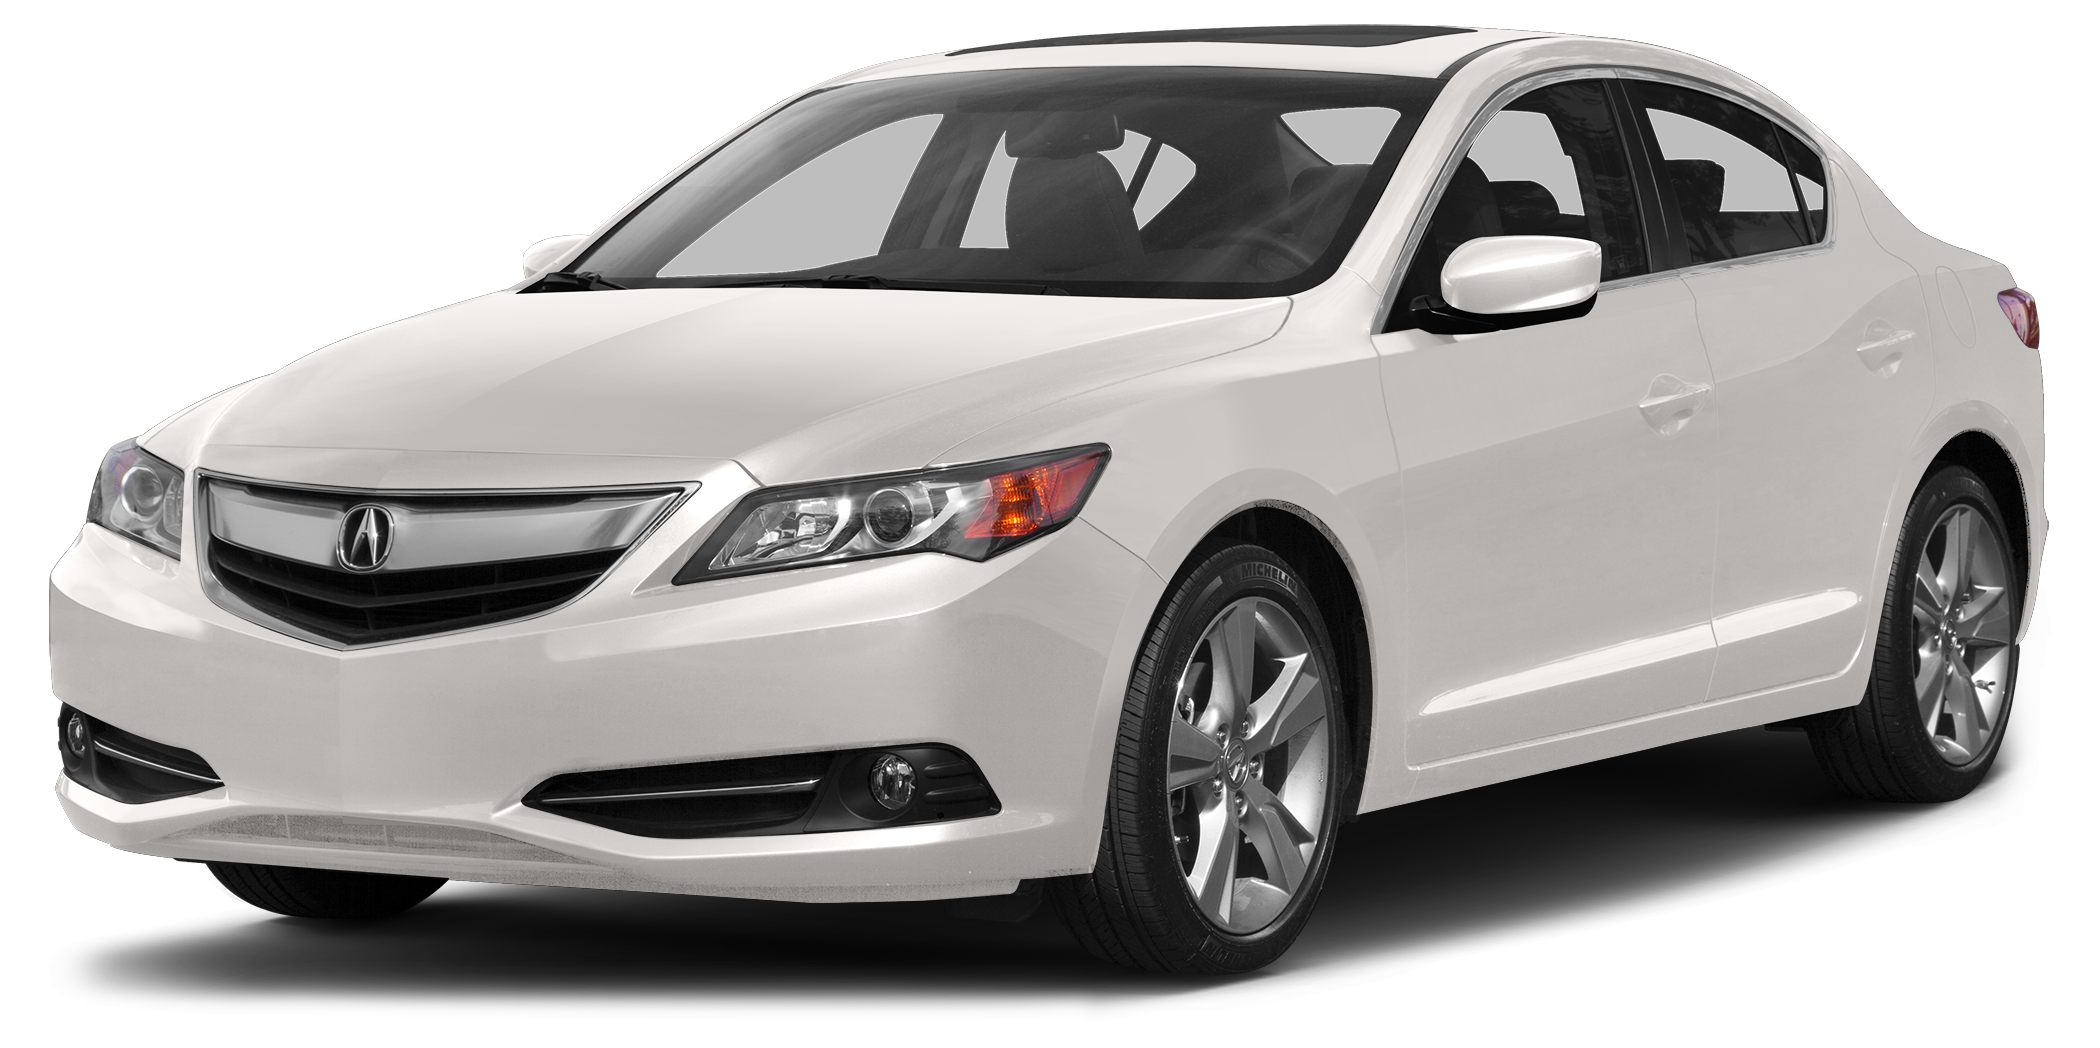 2013 Acura ILX 20 Premium THIS VEHICLE COMES WITH OUR BEST PRICE GUARANTEE Miles 47220Color